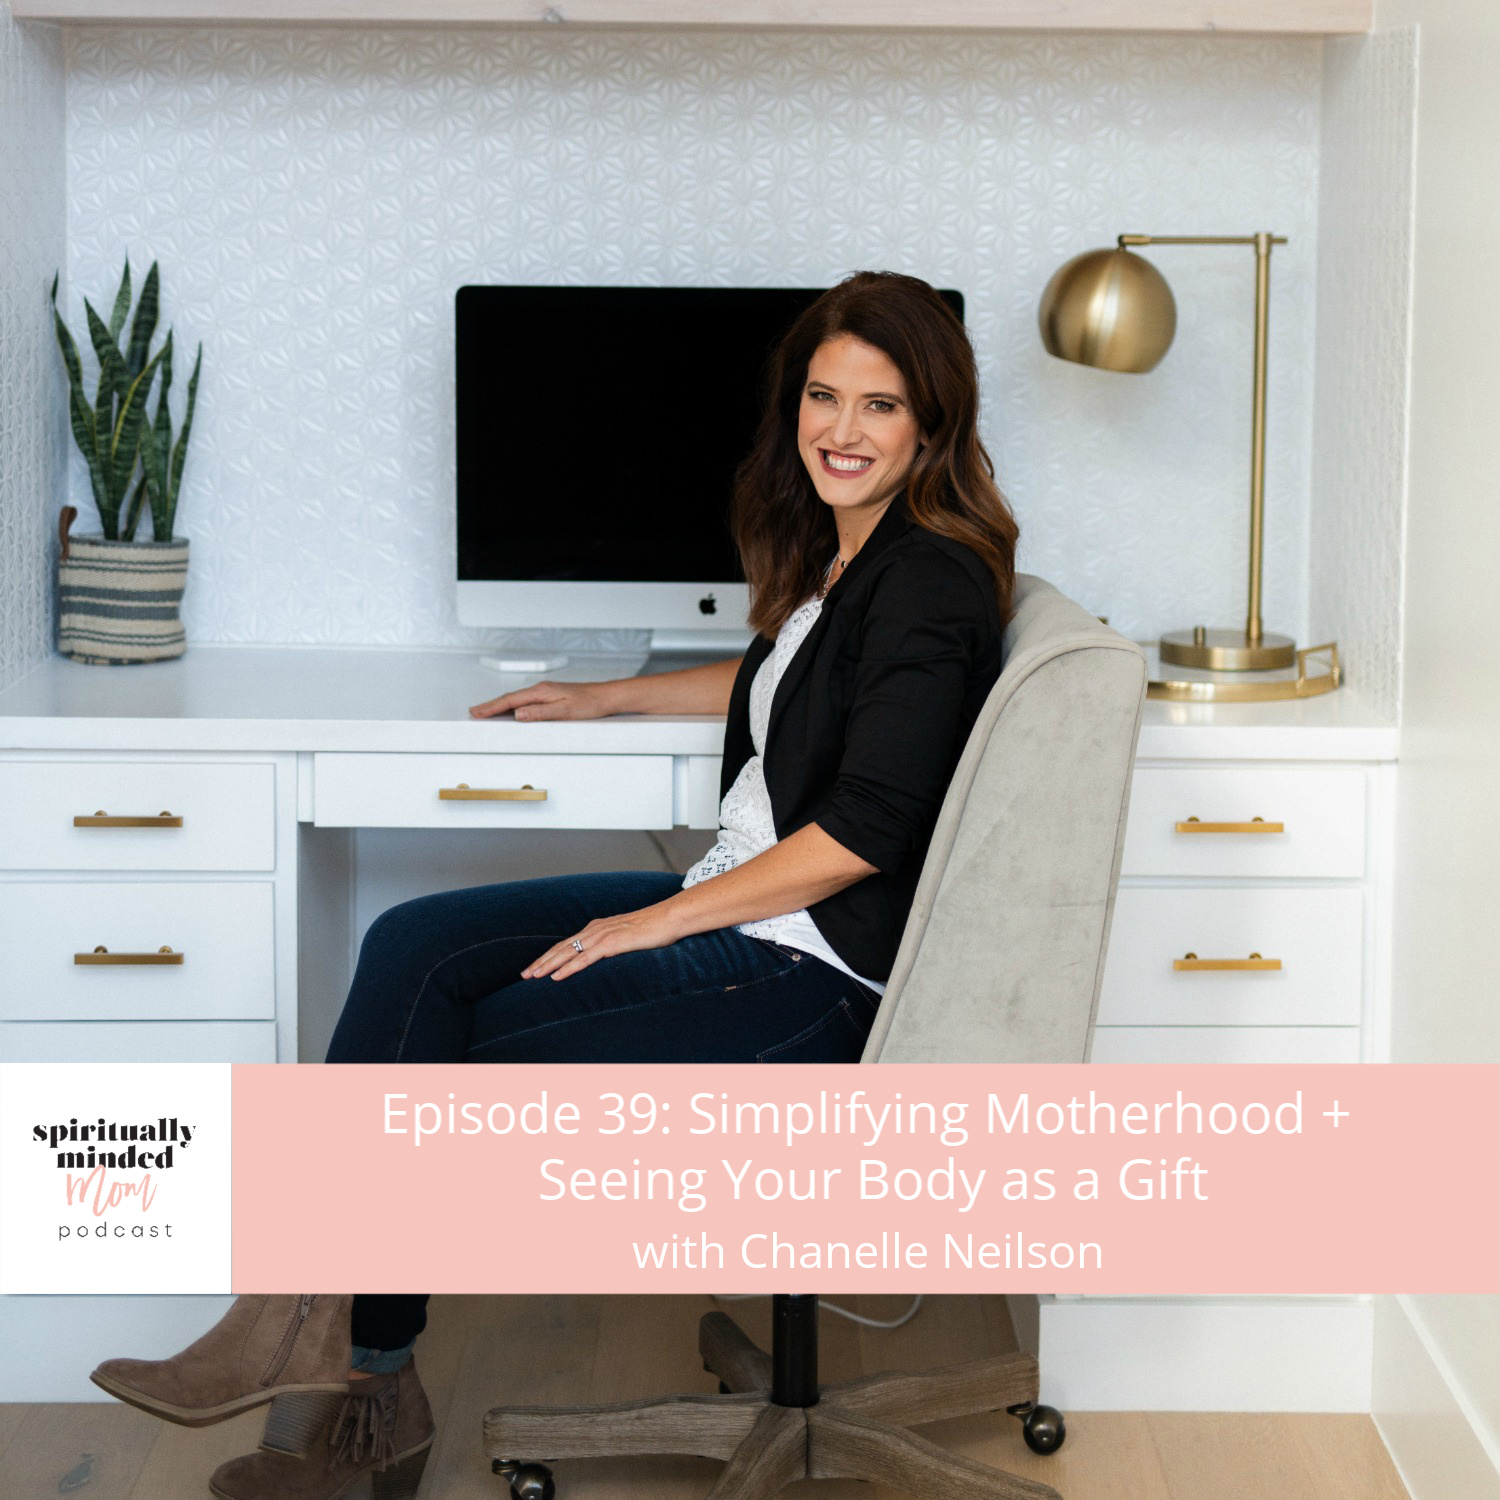 SMM 039: Simplifying Motherhood + Seeing Your Body as a Gift || Chanelle Neilson